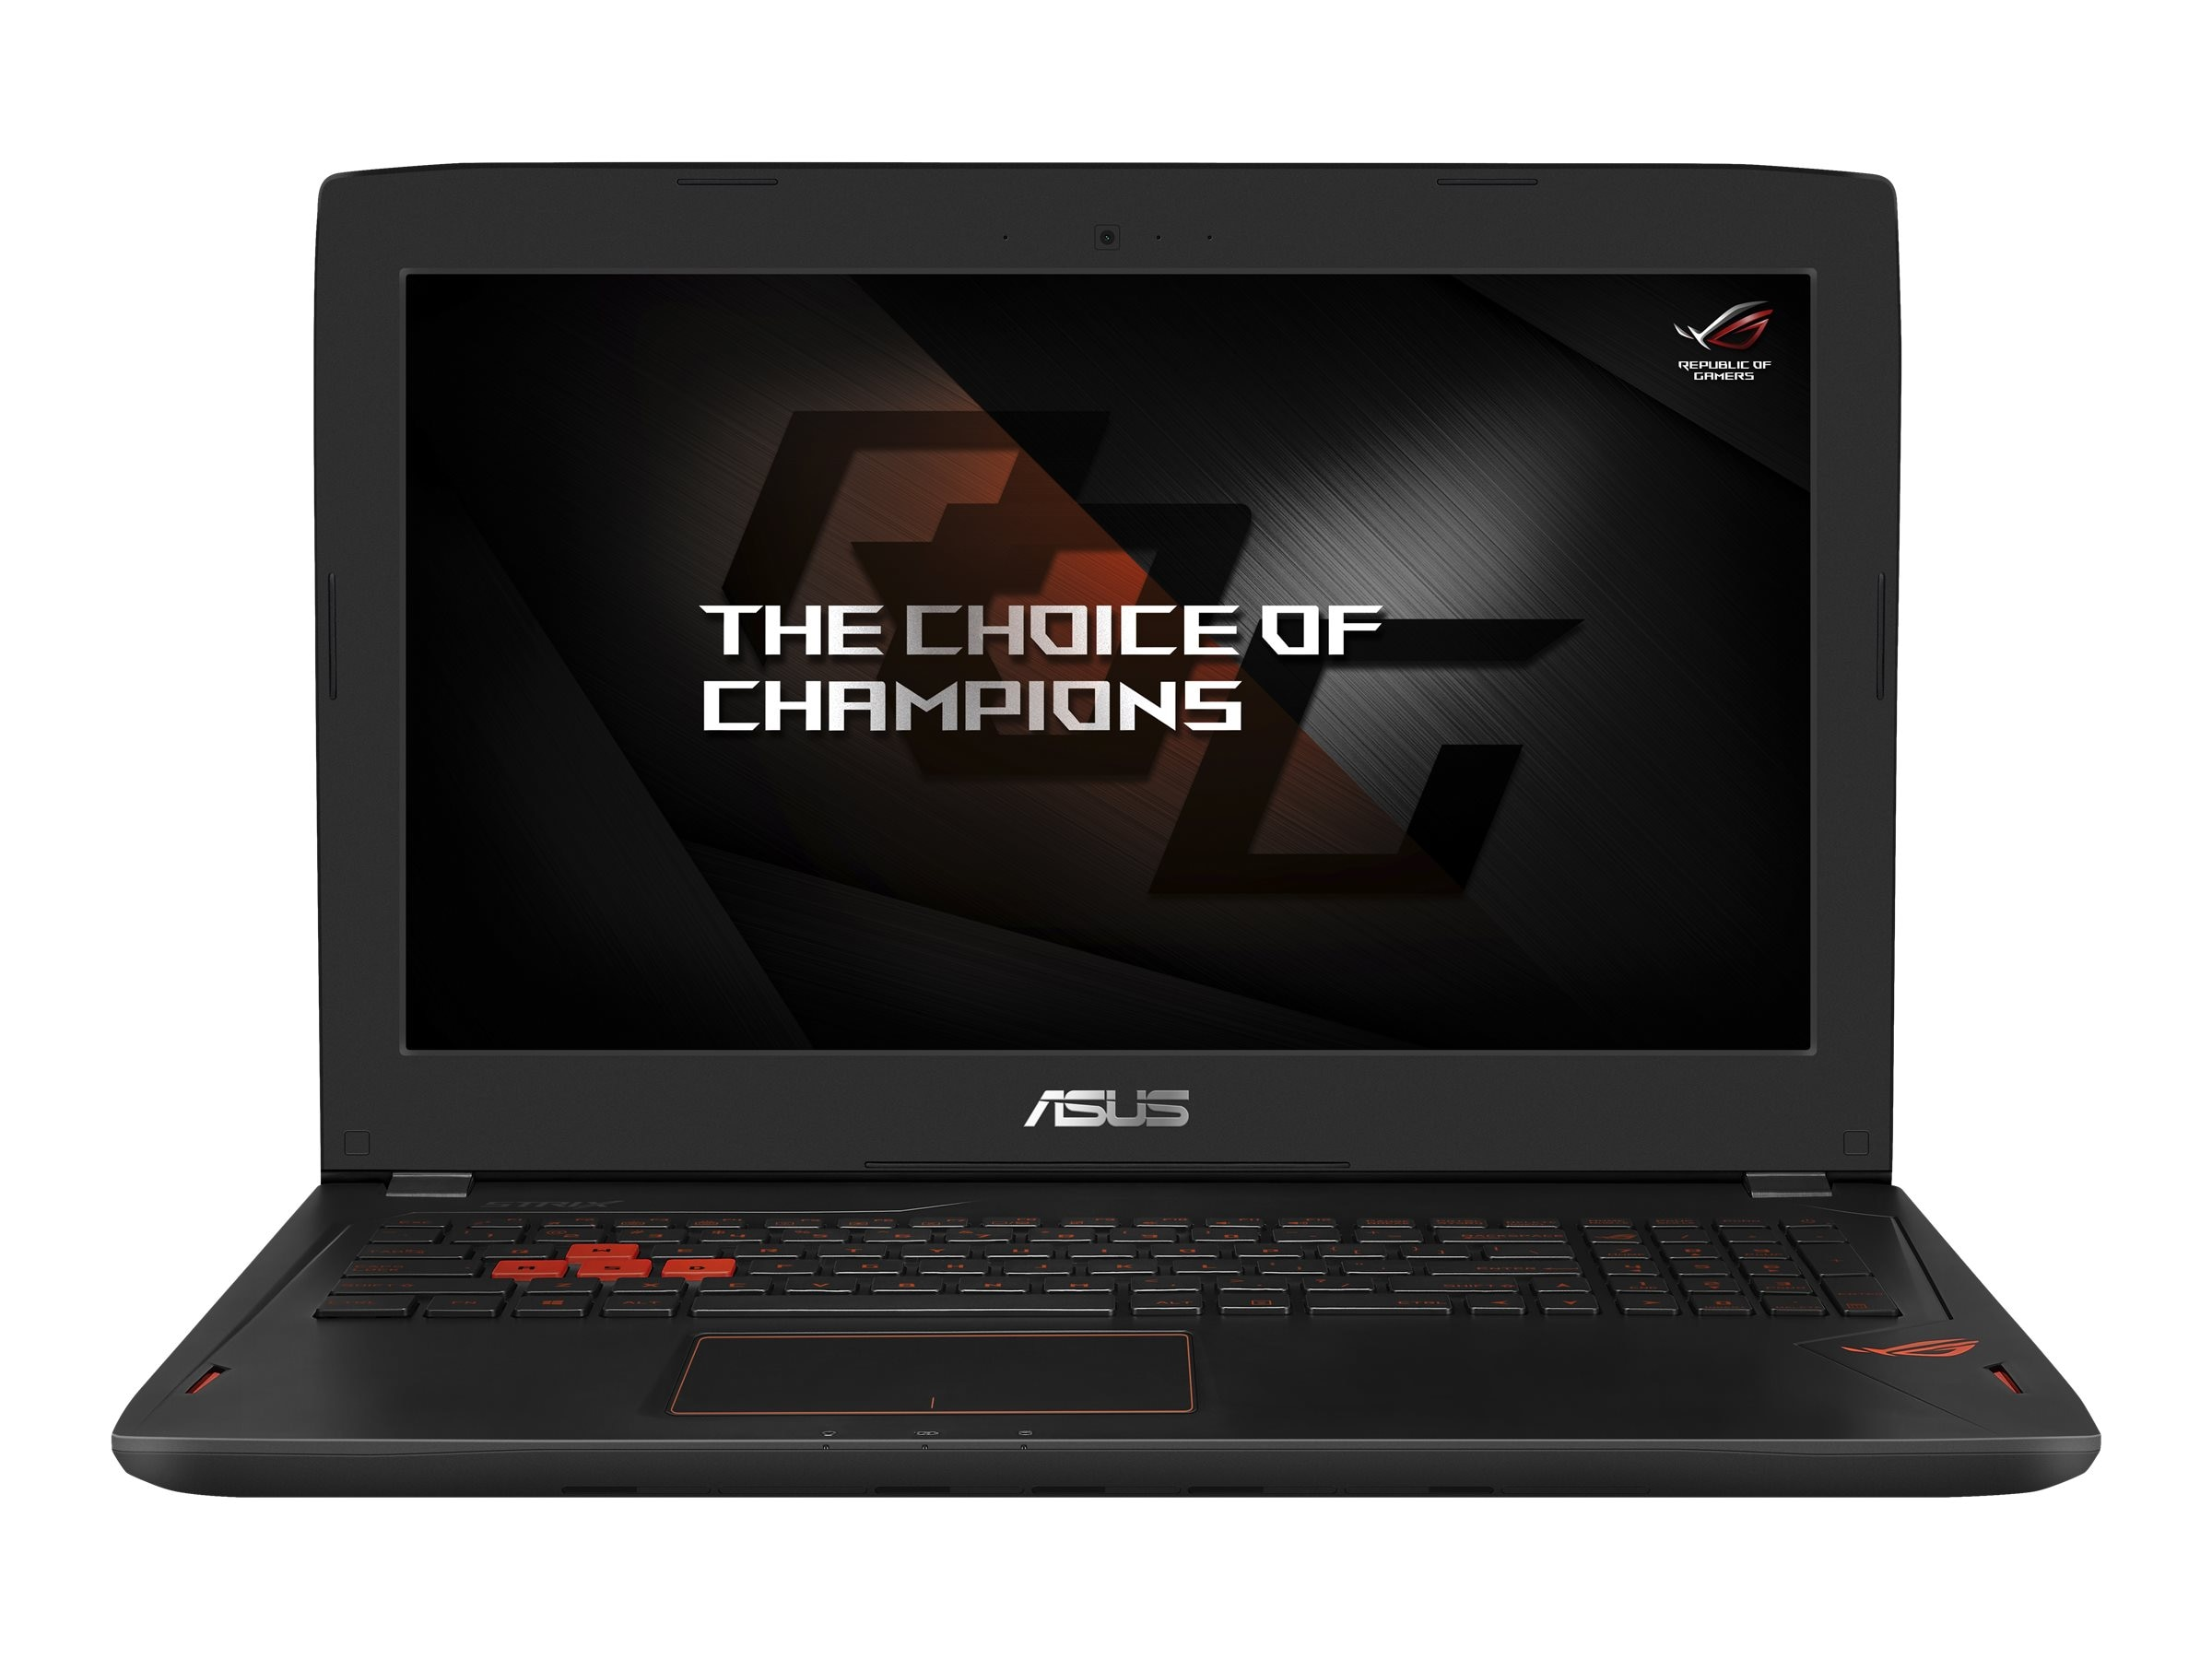 Asus ROG Strix GL502VT-DS71 Core i7-6700HQ 2.6GHz 16GB 1TB+128GB SSD 15.6 W10, GL502VY-DS71